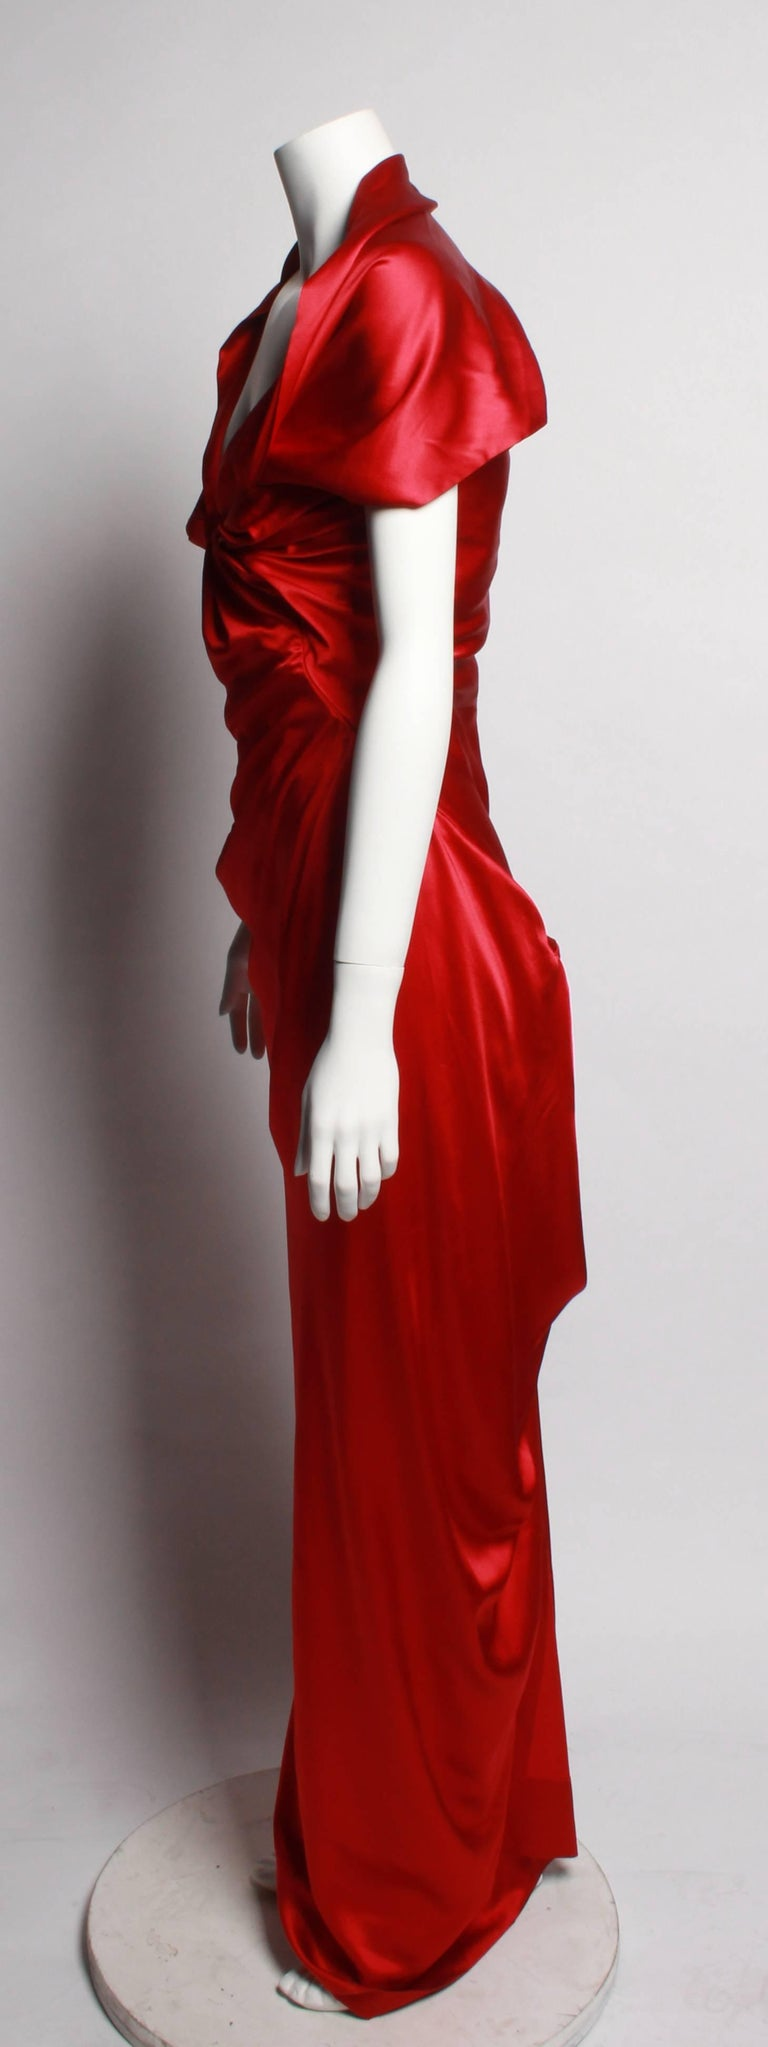 Red Vivienne Westwood Basque Evening Gown With D Neckline For